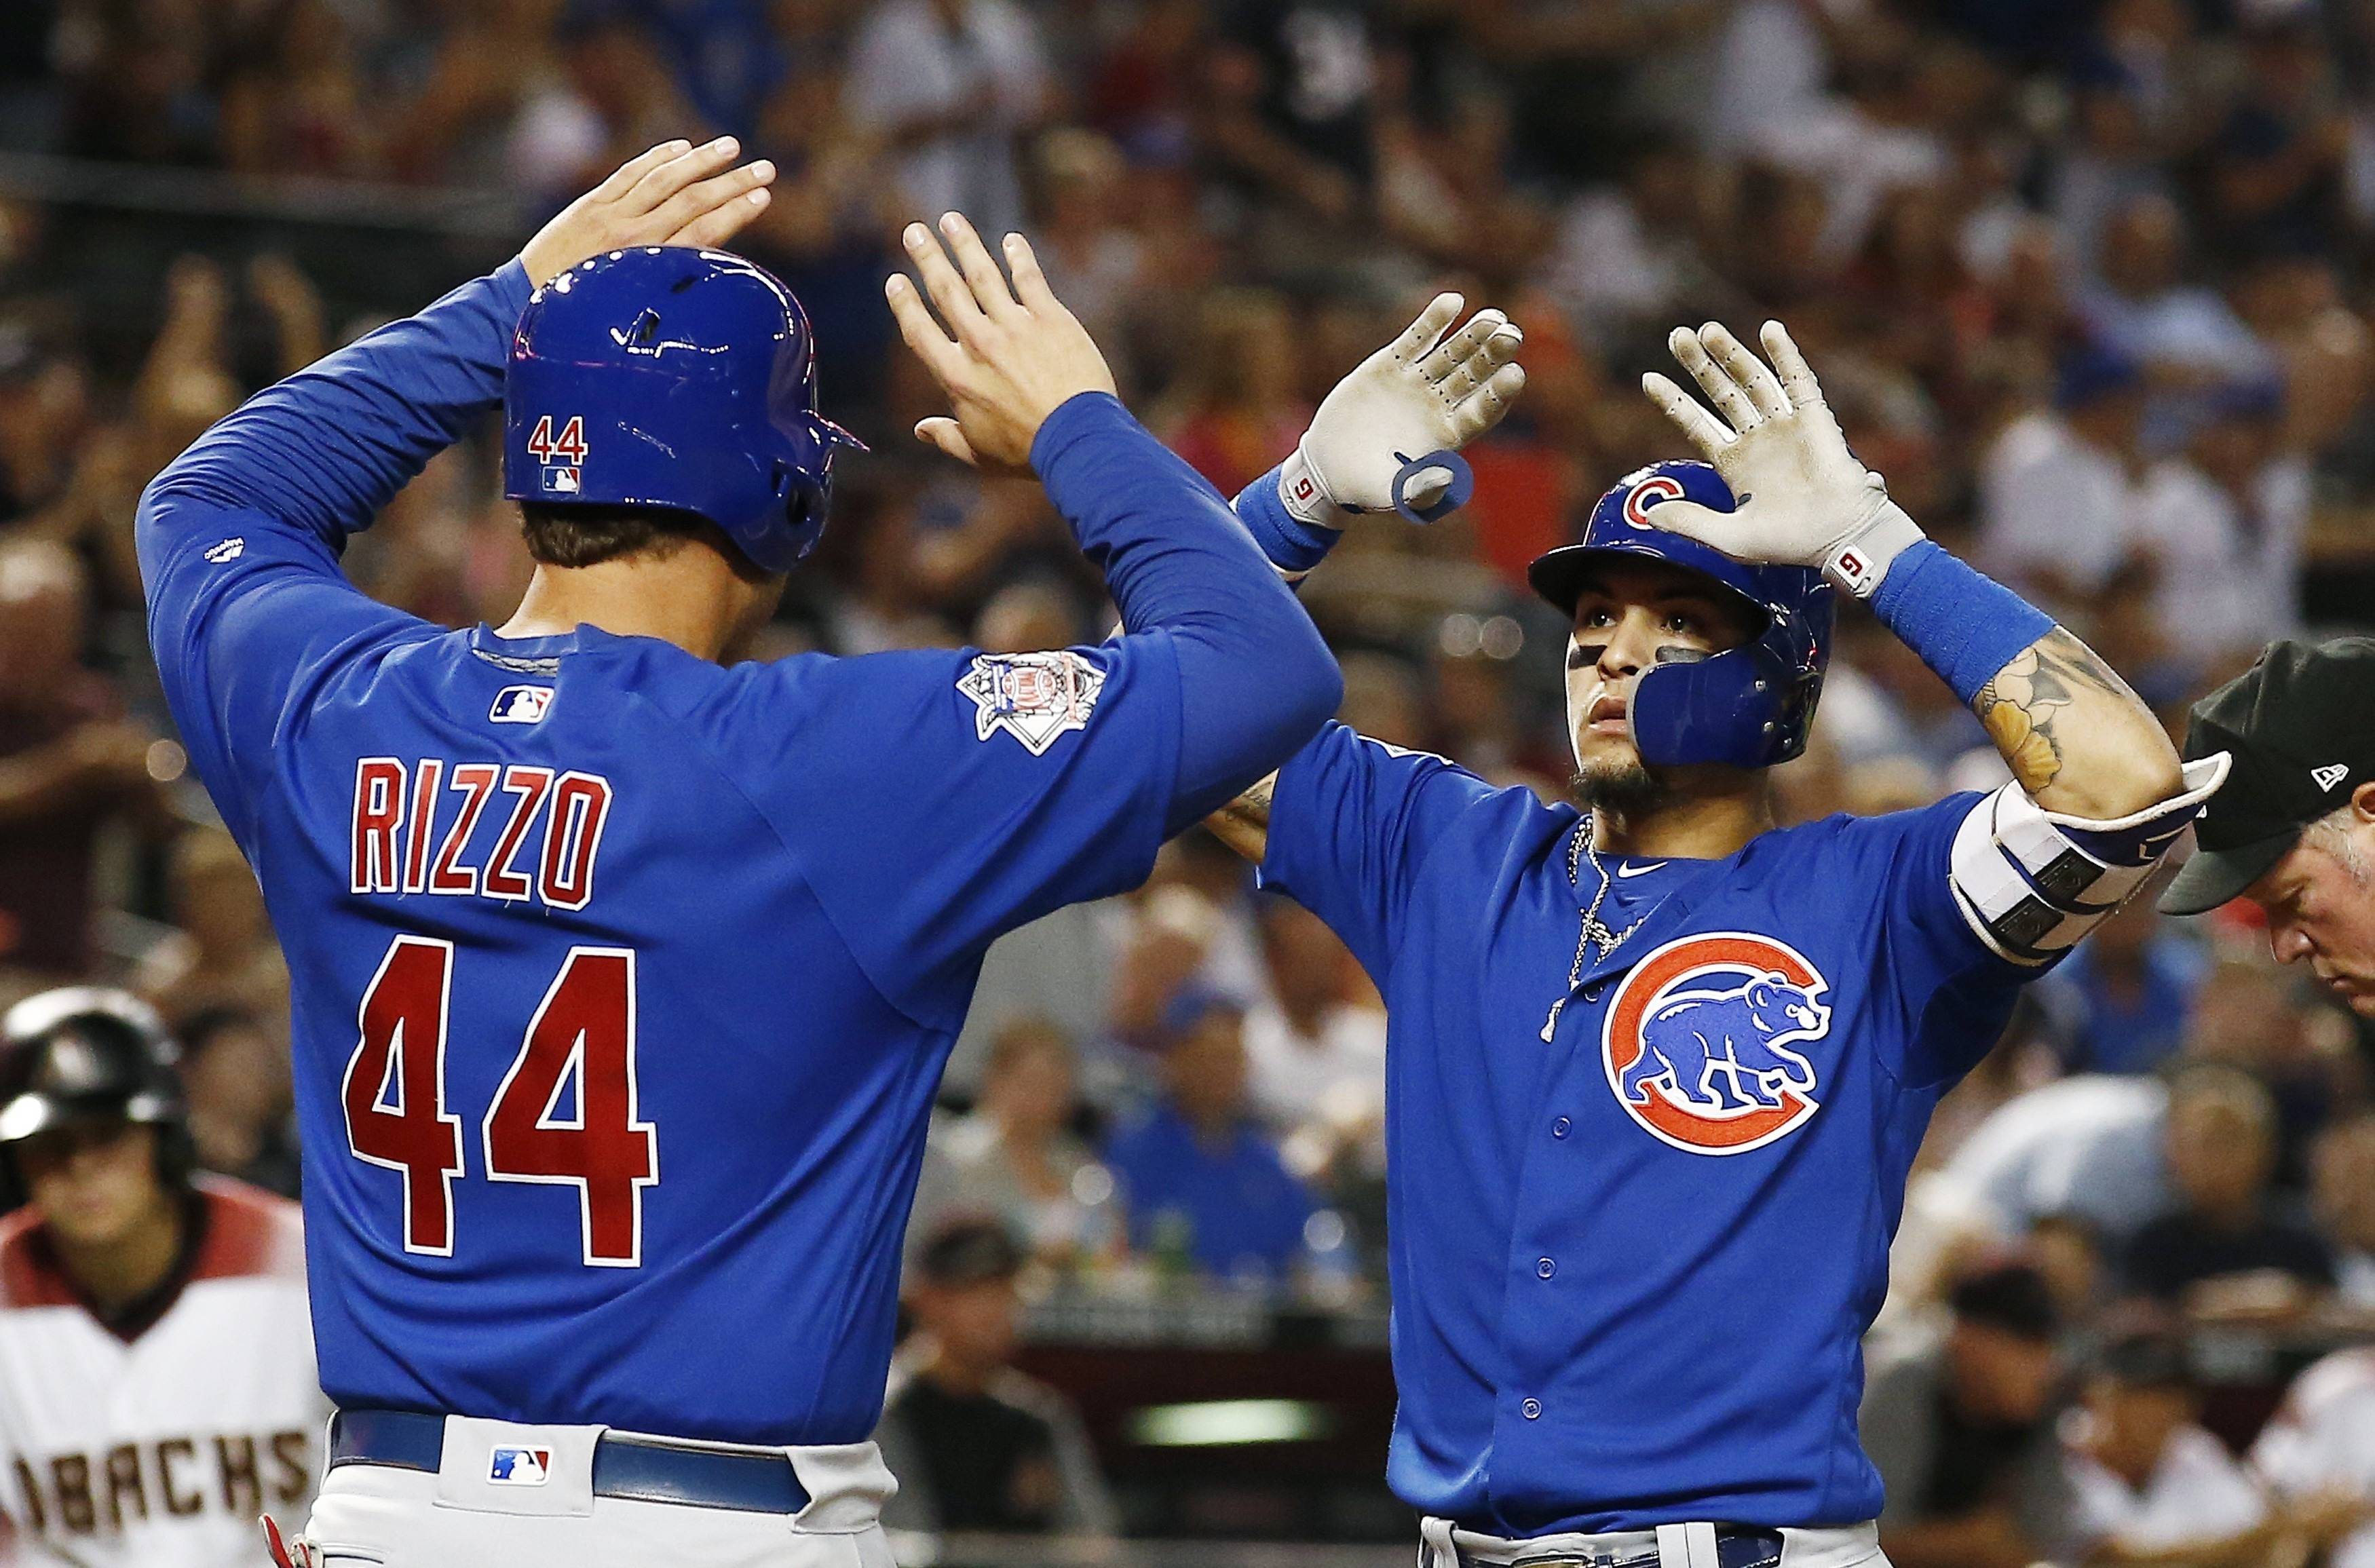 Cubs infielder Javier Baez, right, celebrates his 2-run homer against the Arizona Diamondbacks with first baseman Anthony Rizzo (44) during Monday's win over the Diamondbacks. Thirty days in the desert for the Cubs? Not quite, but on Thursday, they enjoyed their first real off-day in the schedule since Aug. 20. In between was an action-packed 30 days, setting them up for the final push.